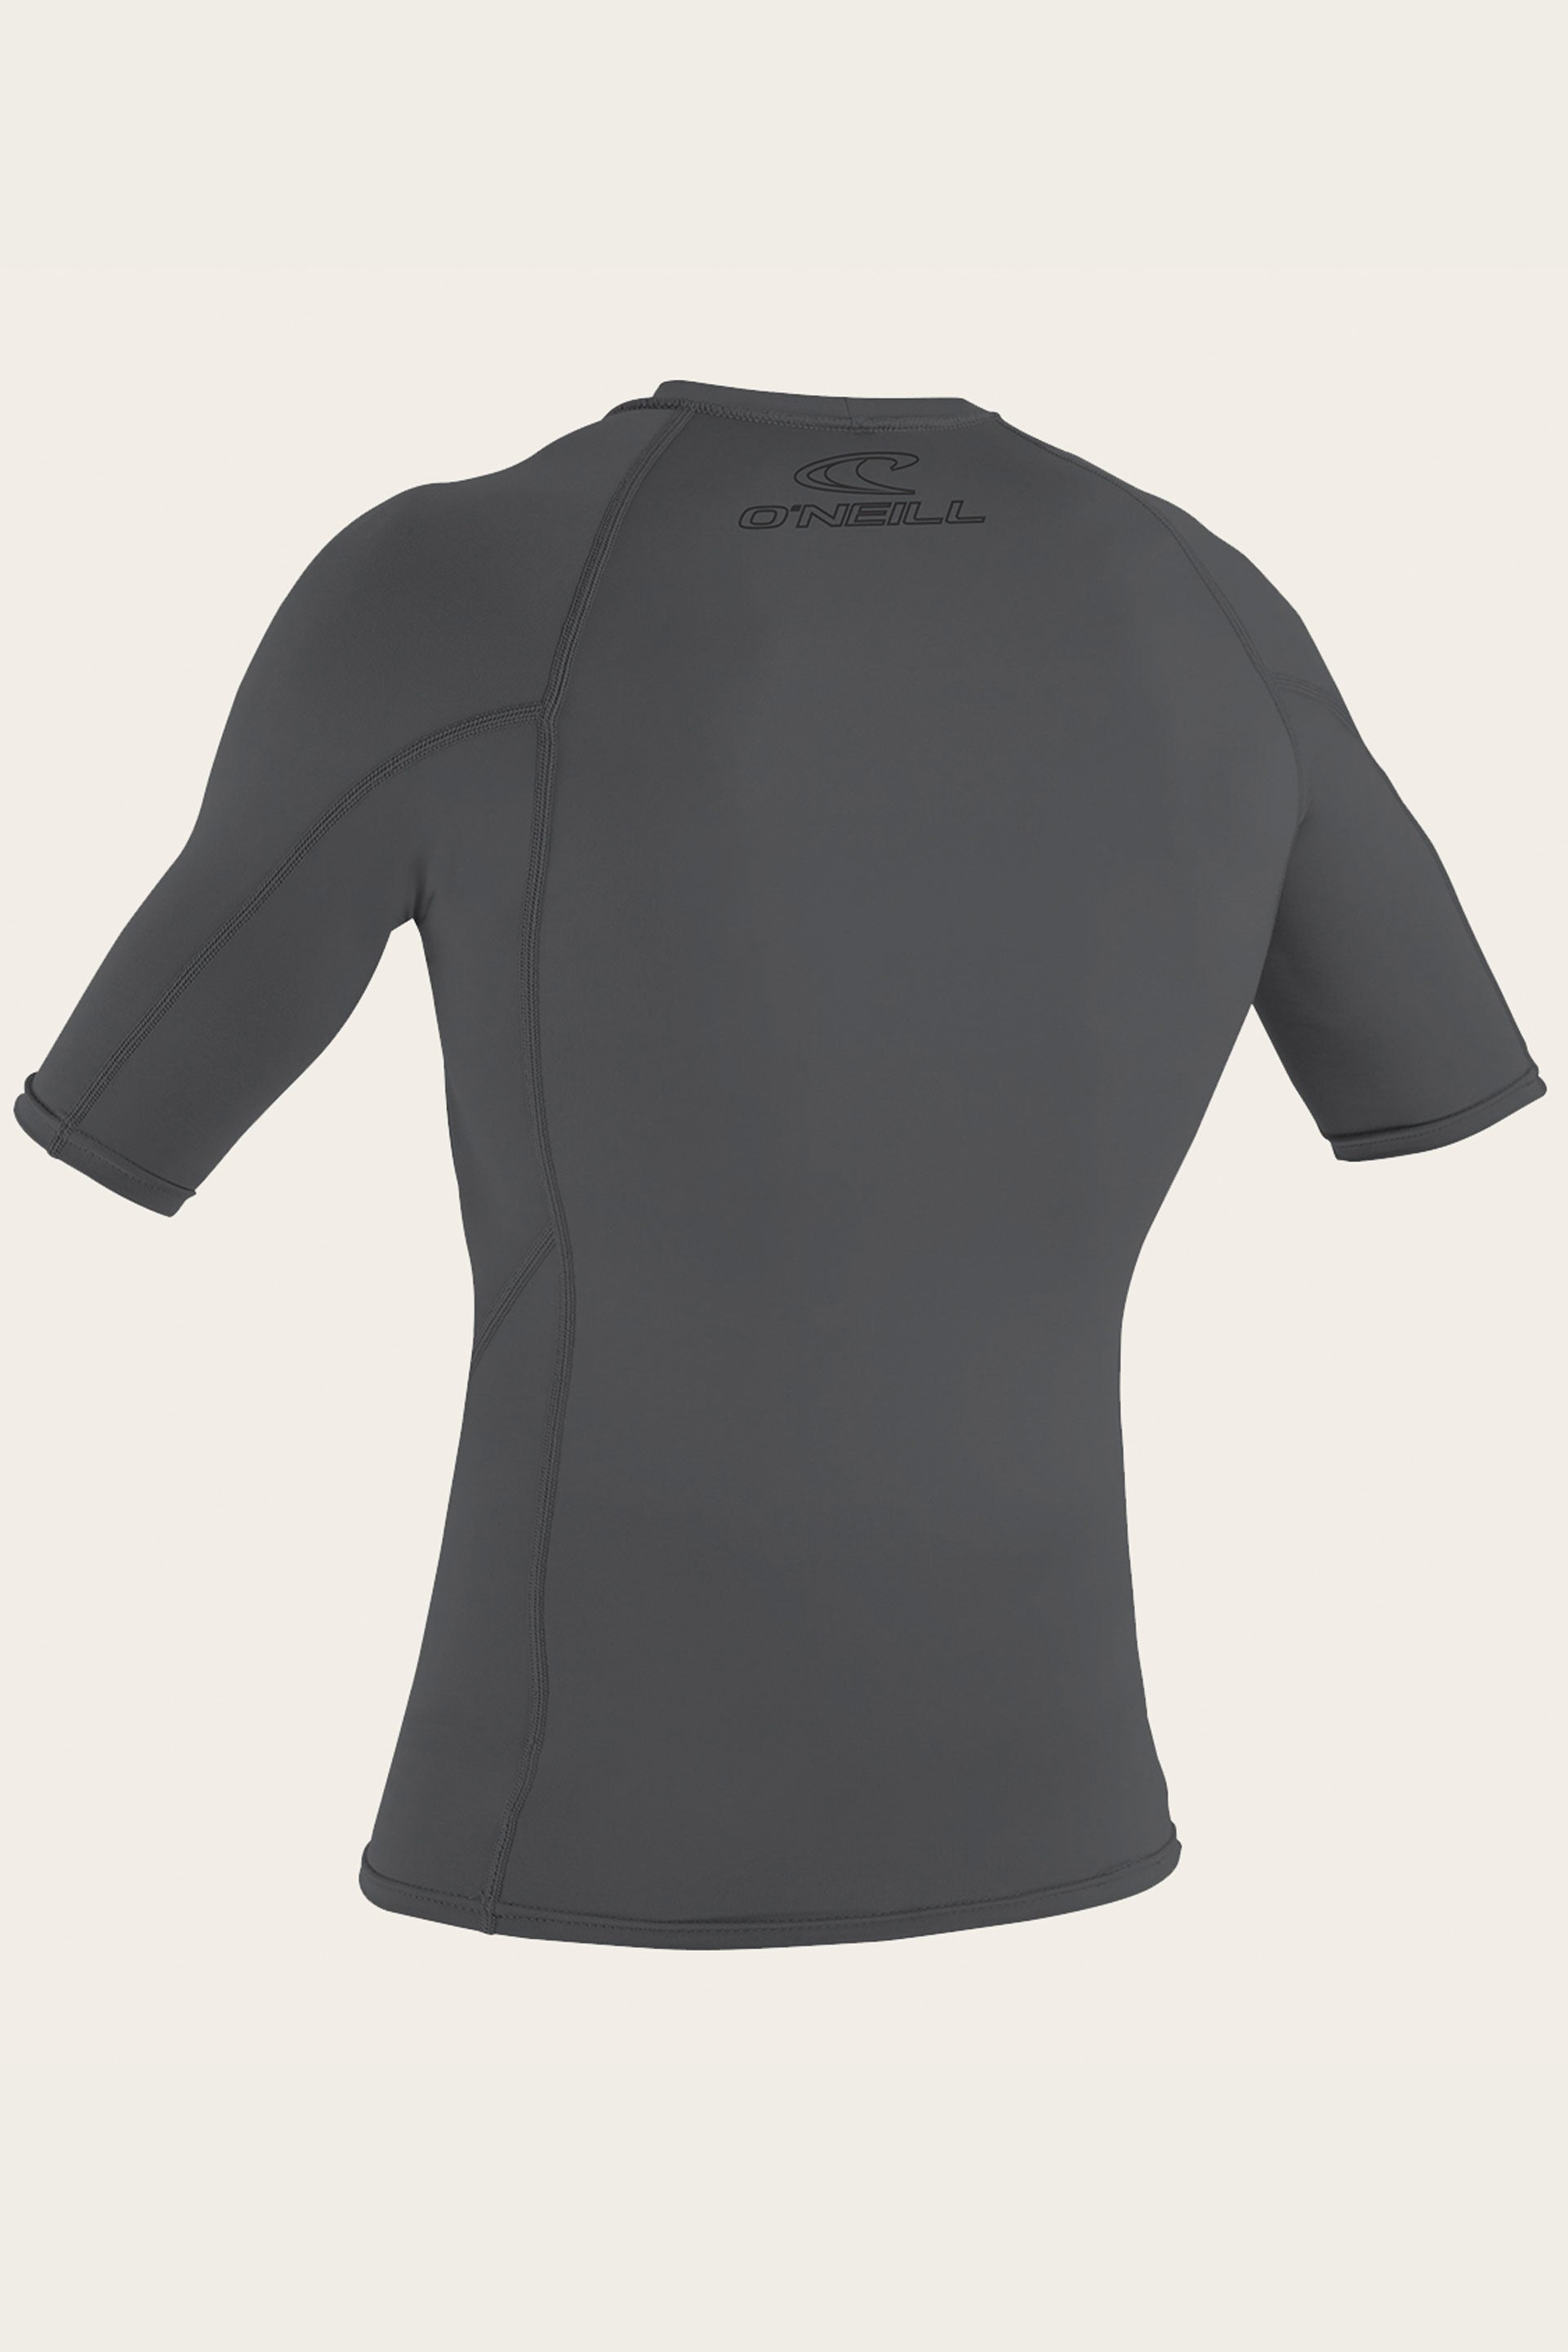 Details about  /Gill Pro Rash Vest Top WHITE Easy Stretch UV Sun Protection SPF Long Sleeve